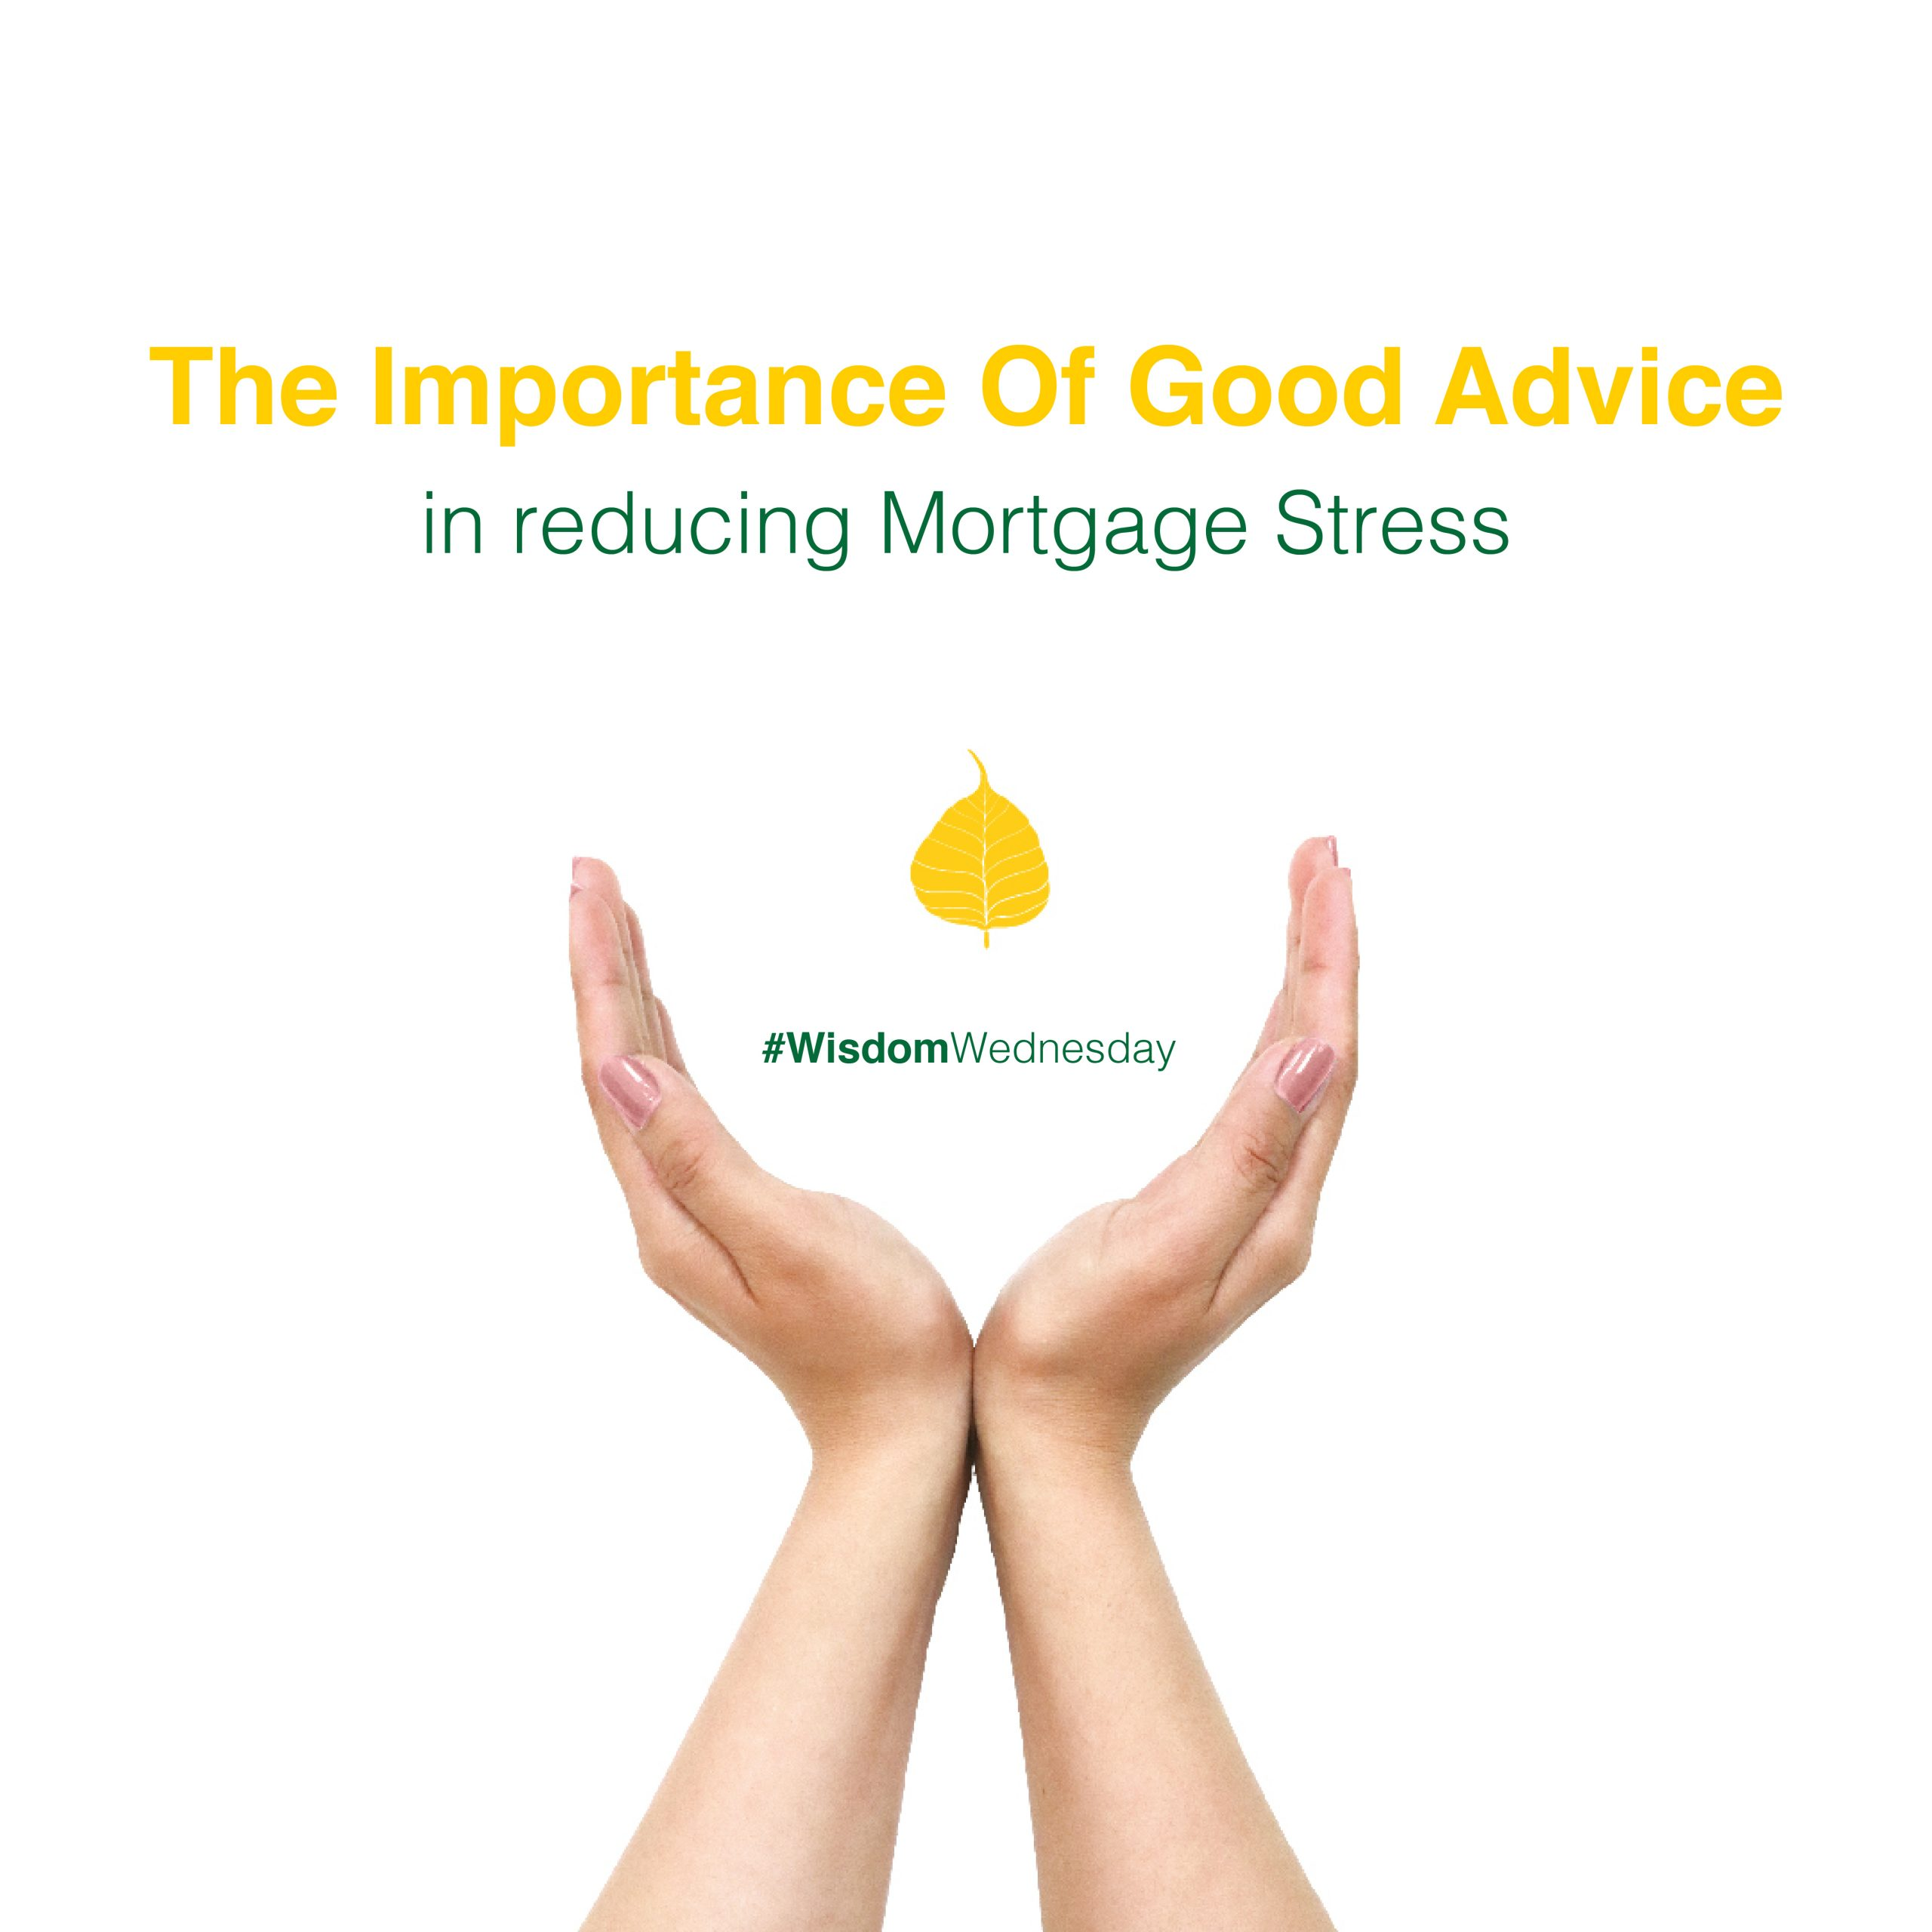 The importance of good advice. Advice makes a difference